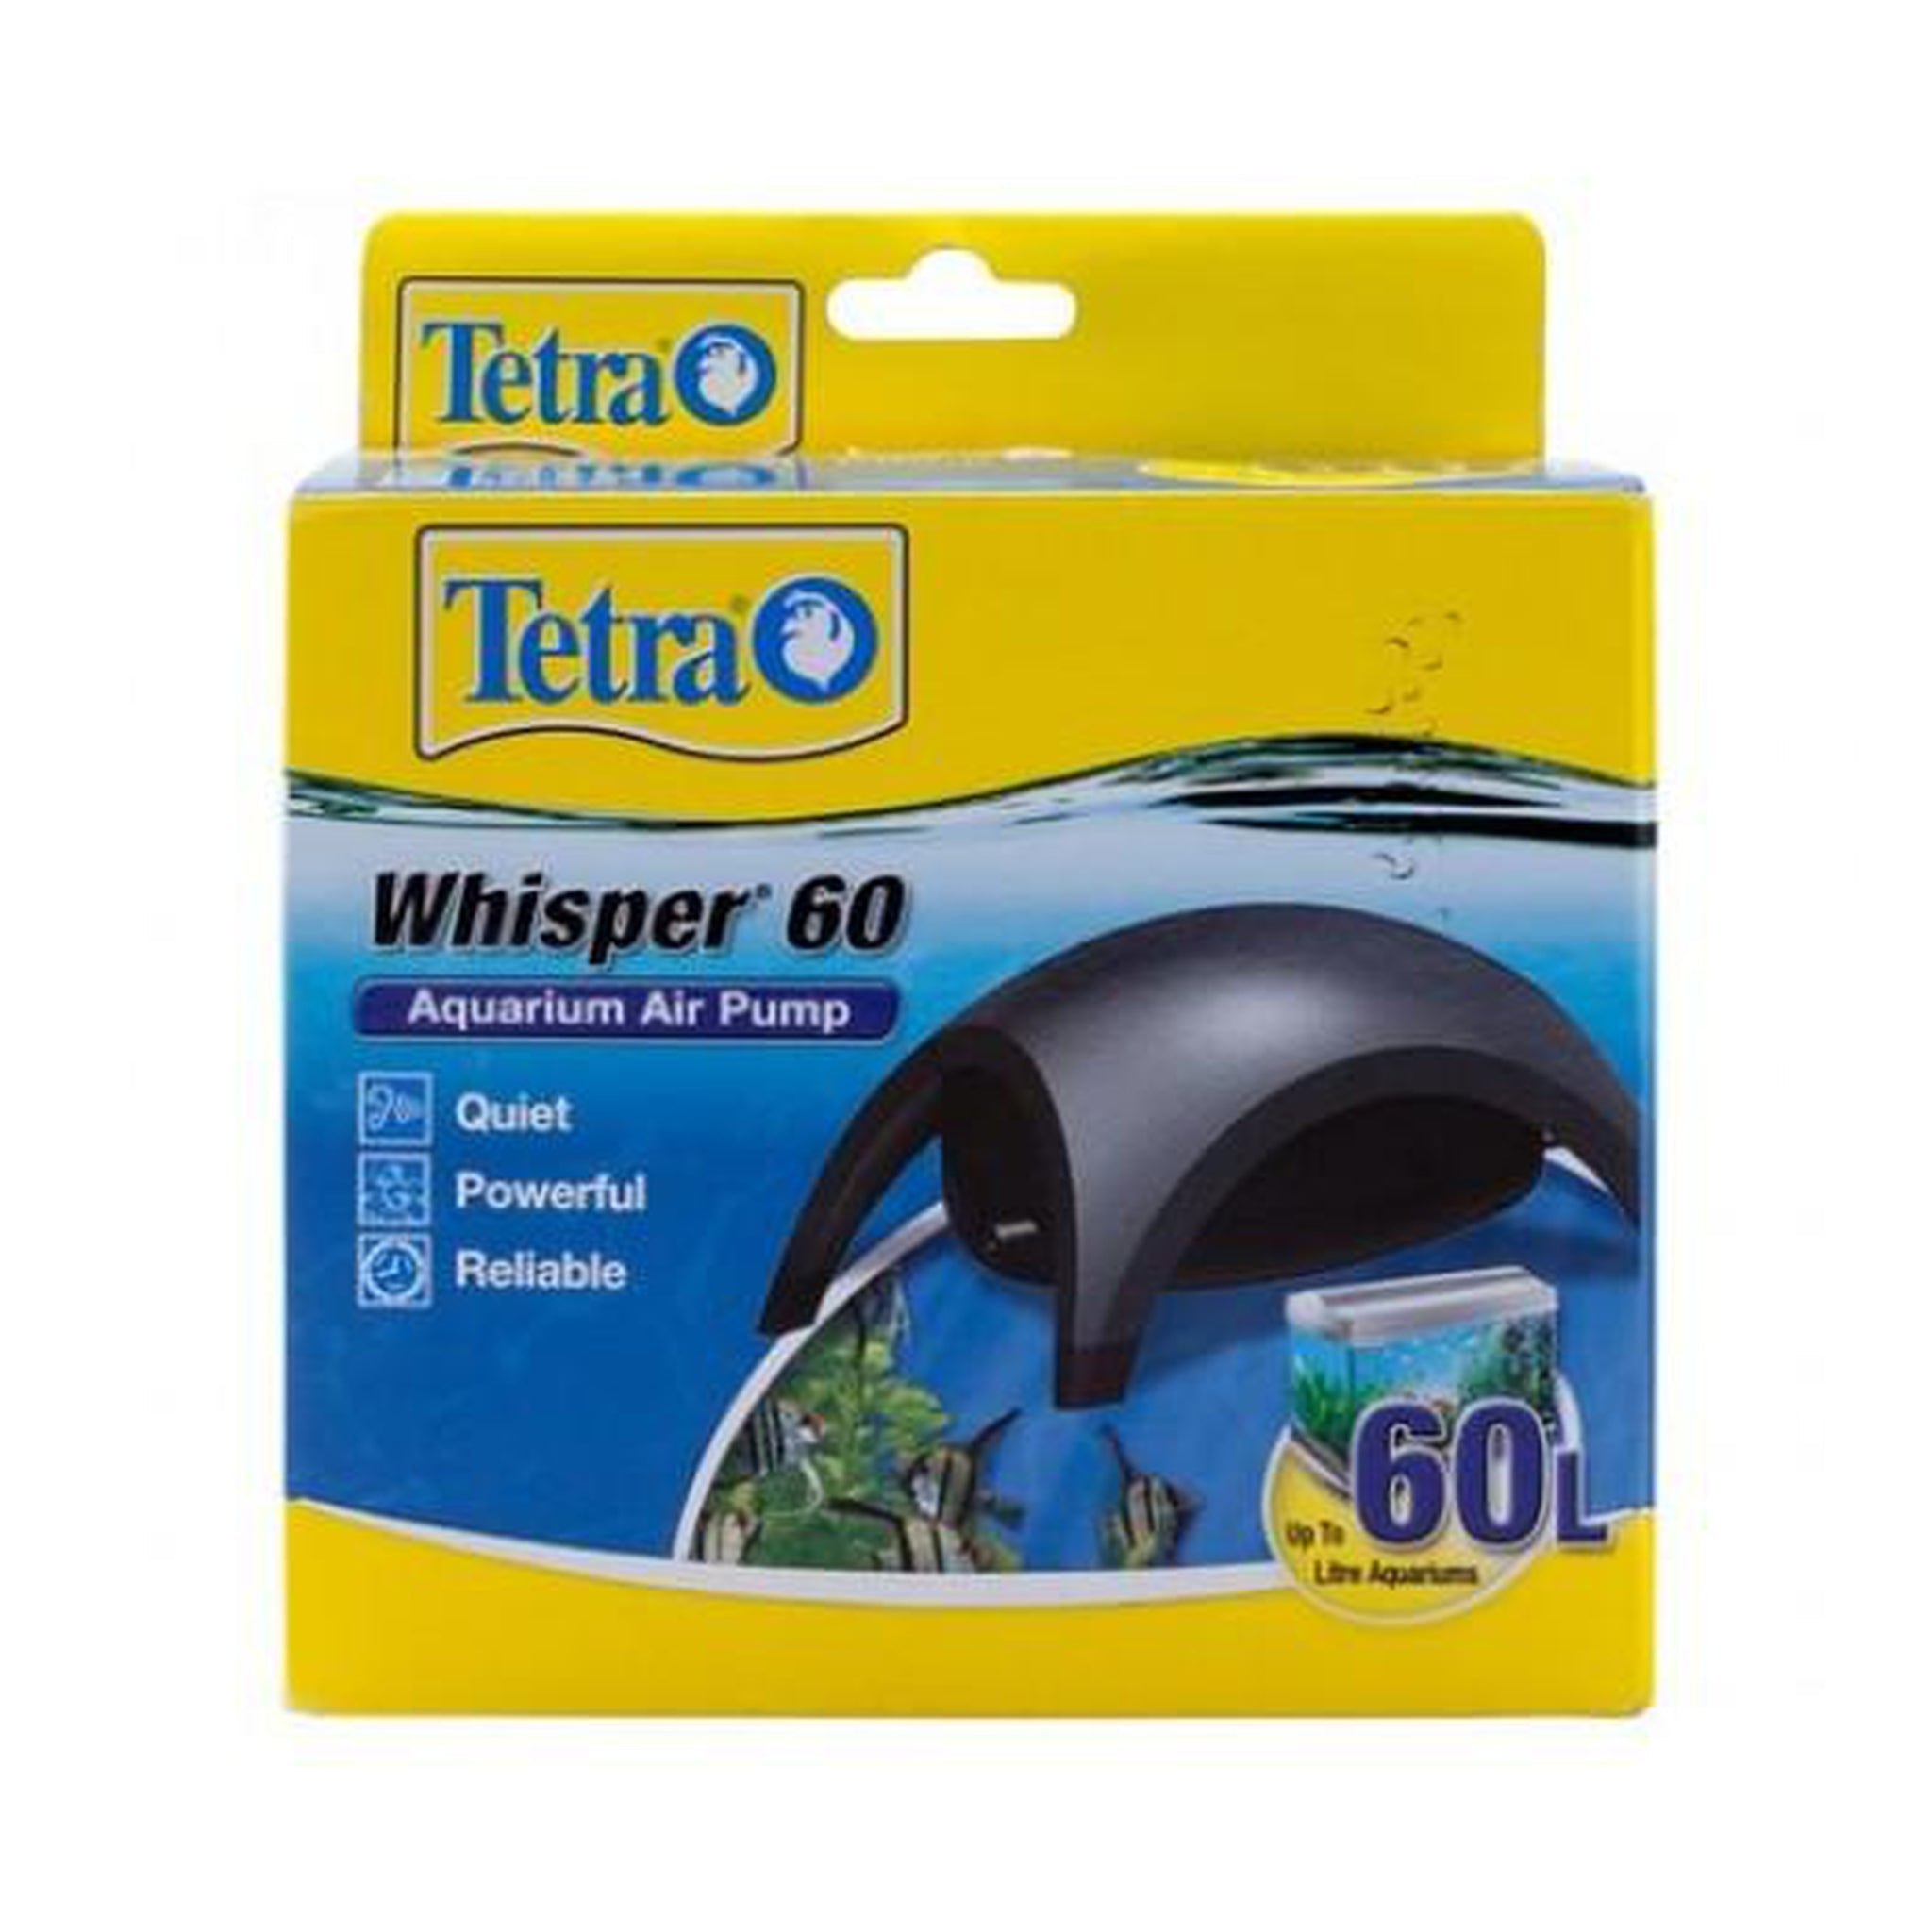 Tetra_Whisper_60_Air_Pump__SET2Q58K88RE.jpg